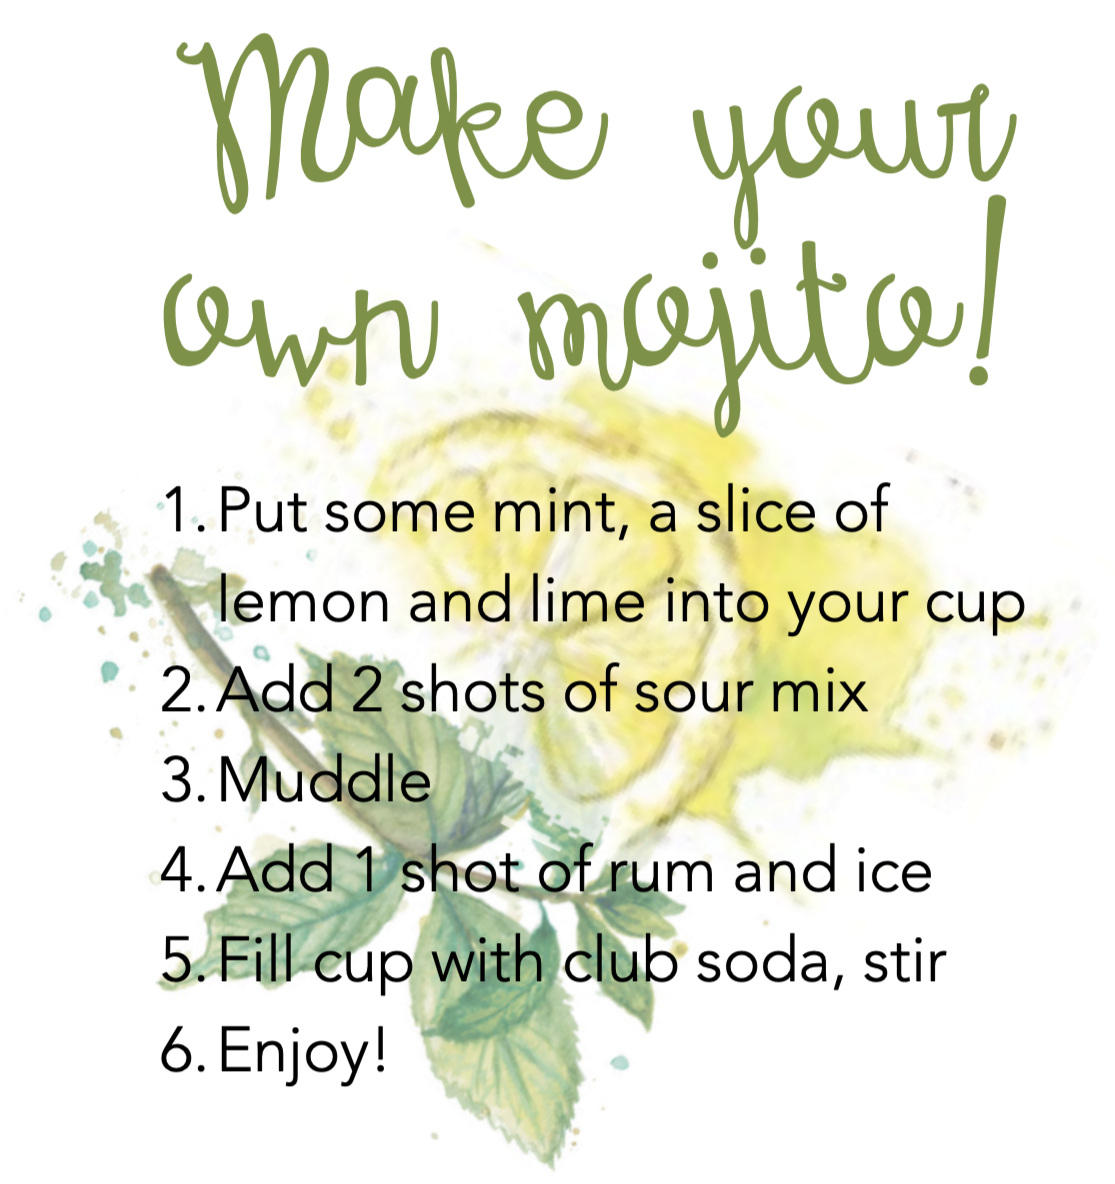 Make+your+own+mojito.jpg